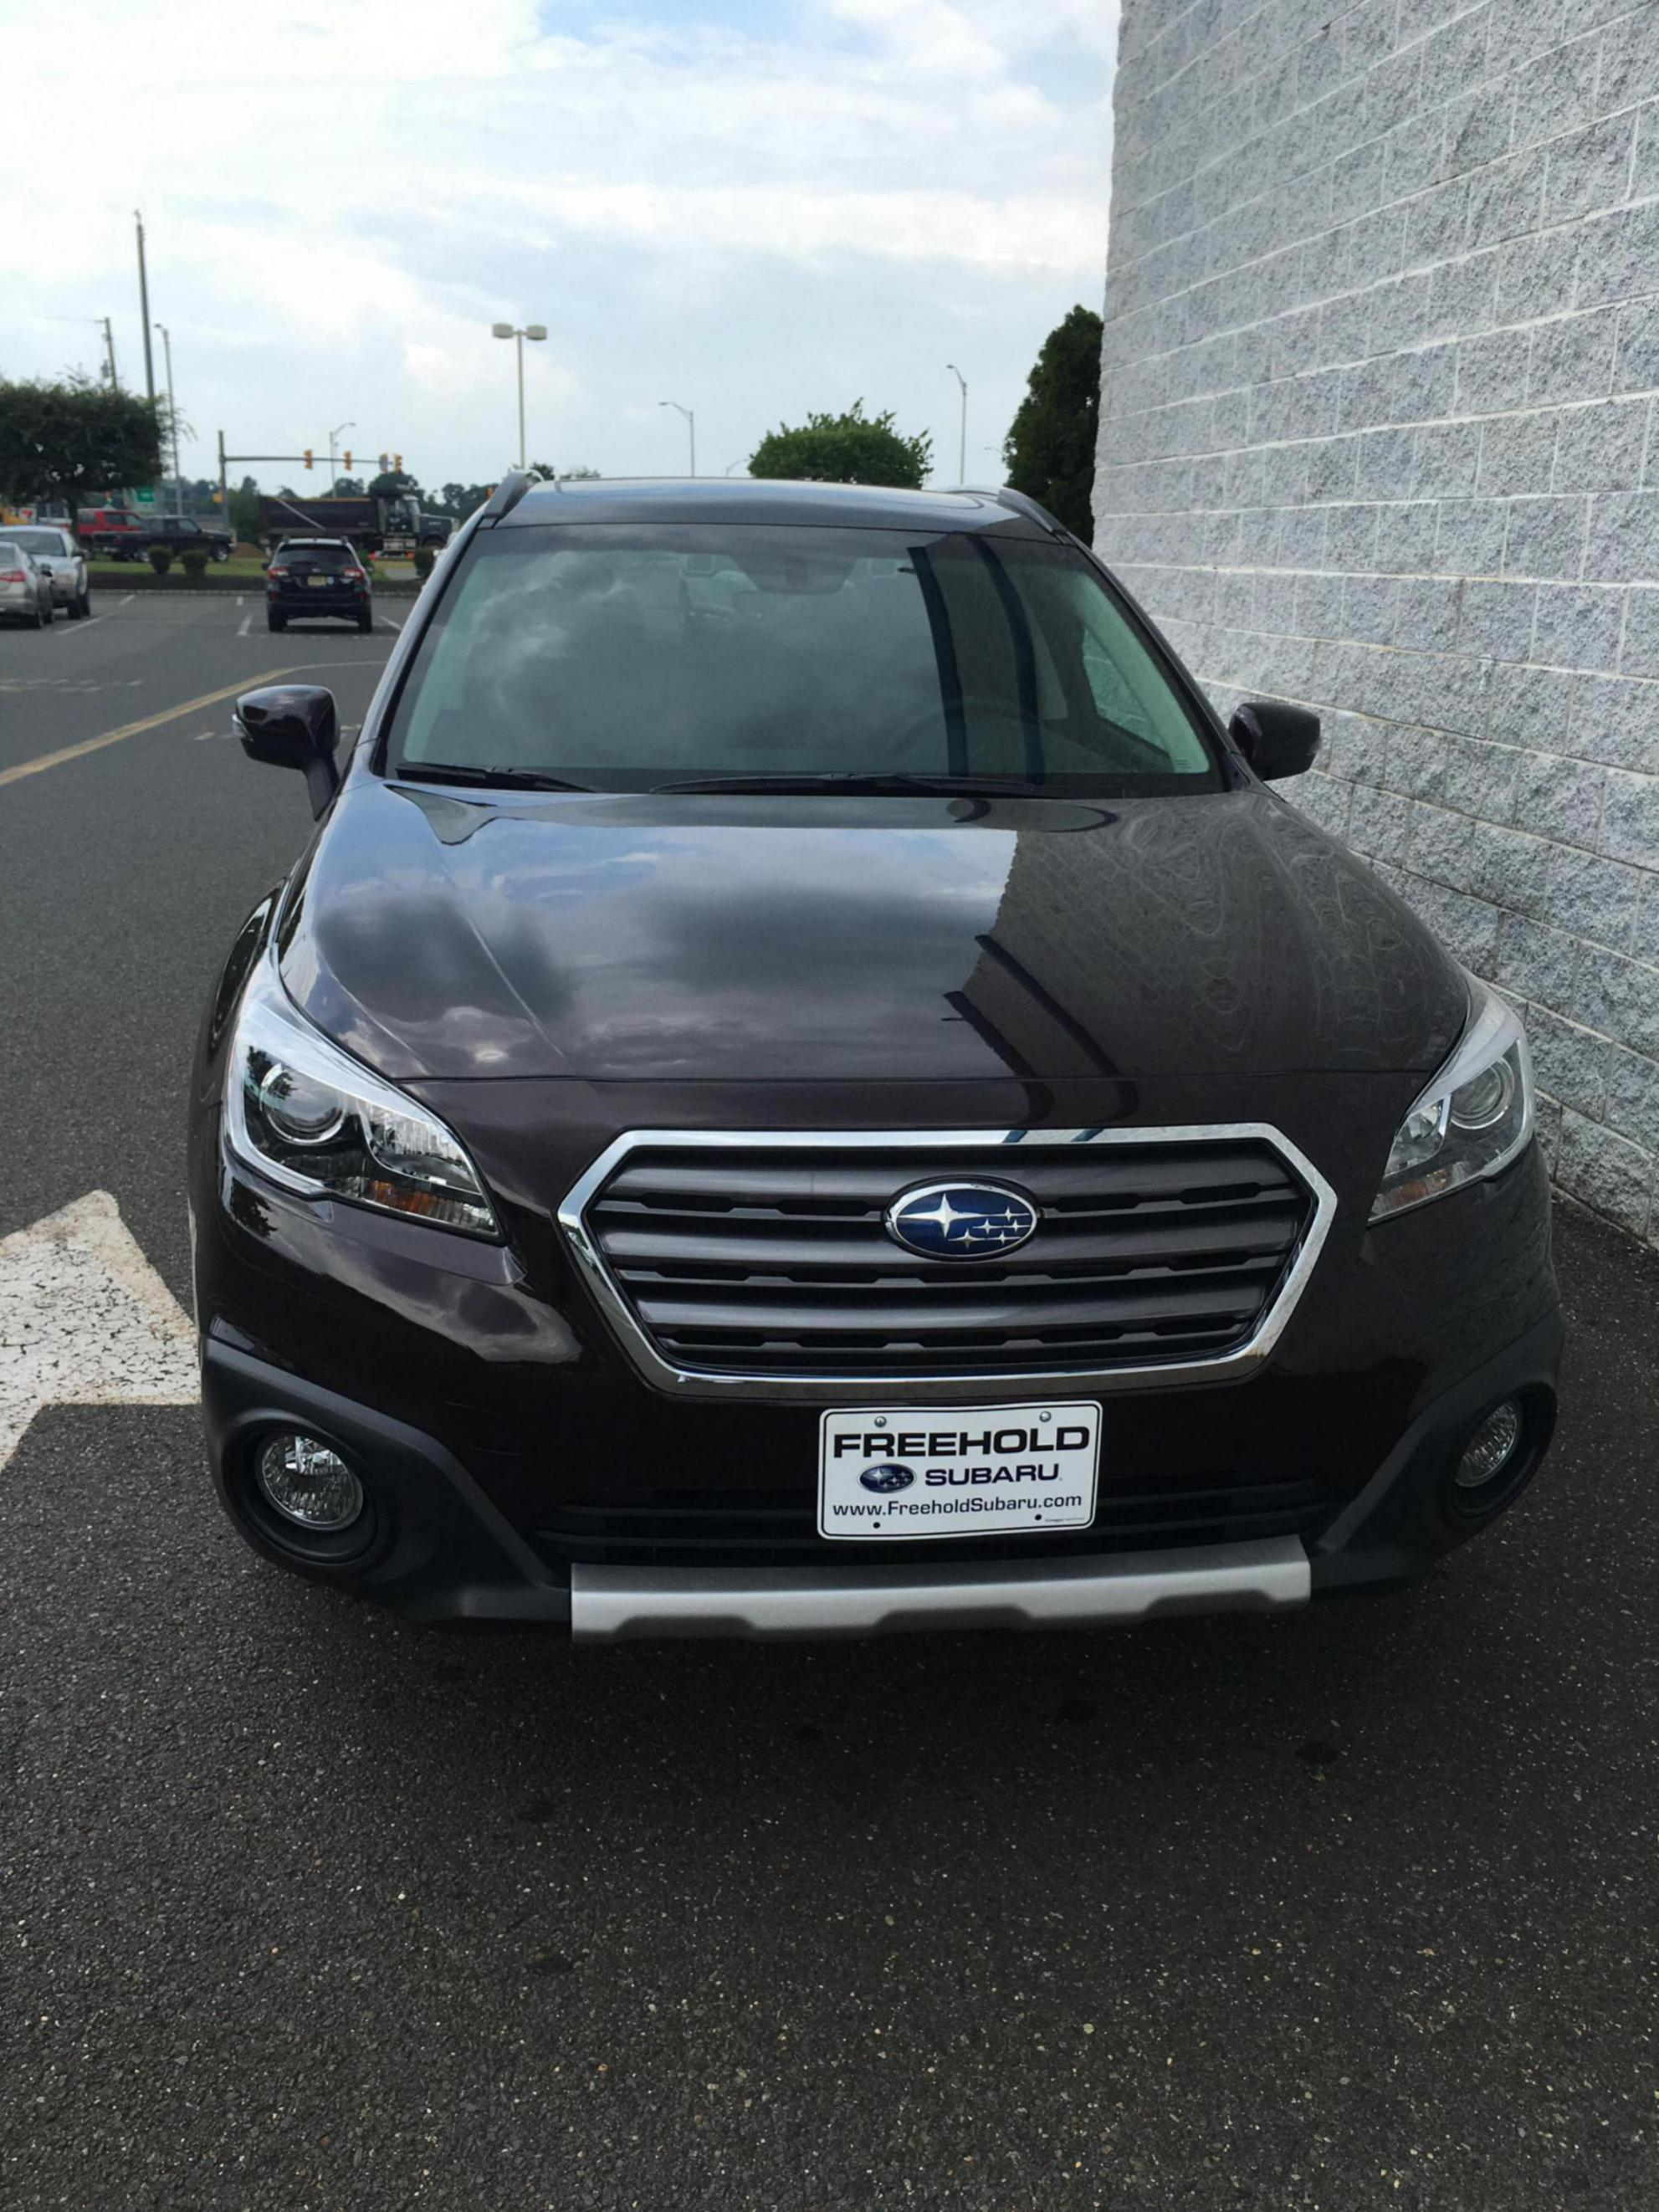 3 6r touring came early page 3 subaru outback subaru outback forums. Black Bedroom Furniture Sets. Home Design Ideas